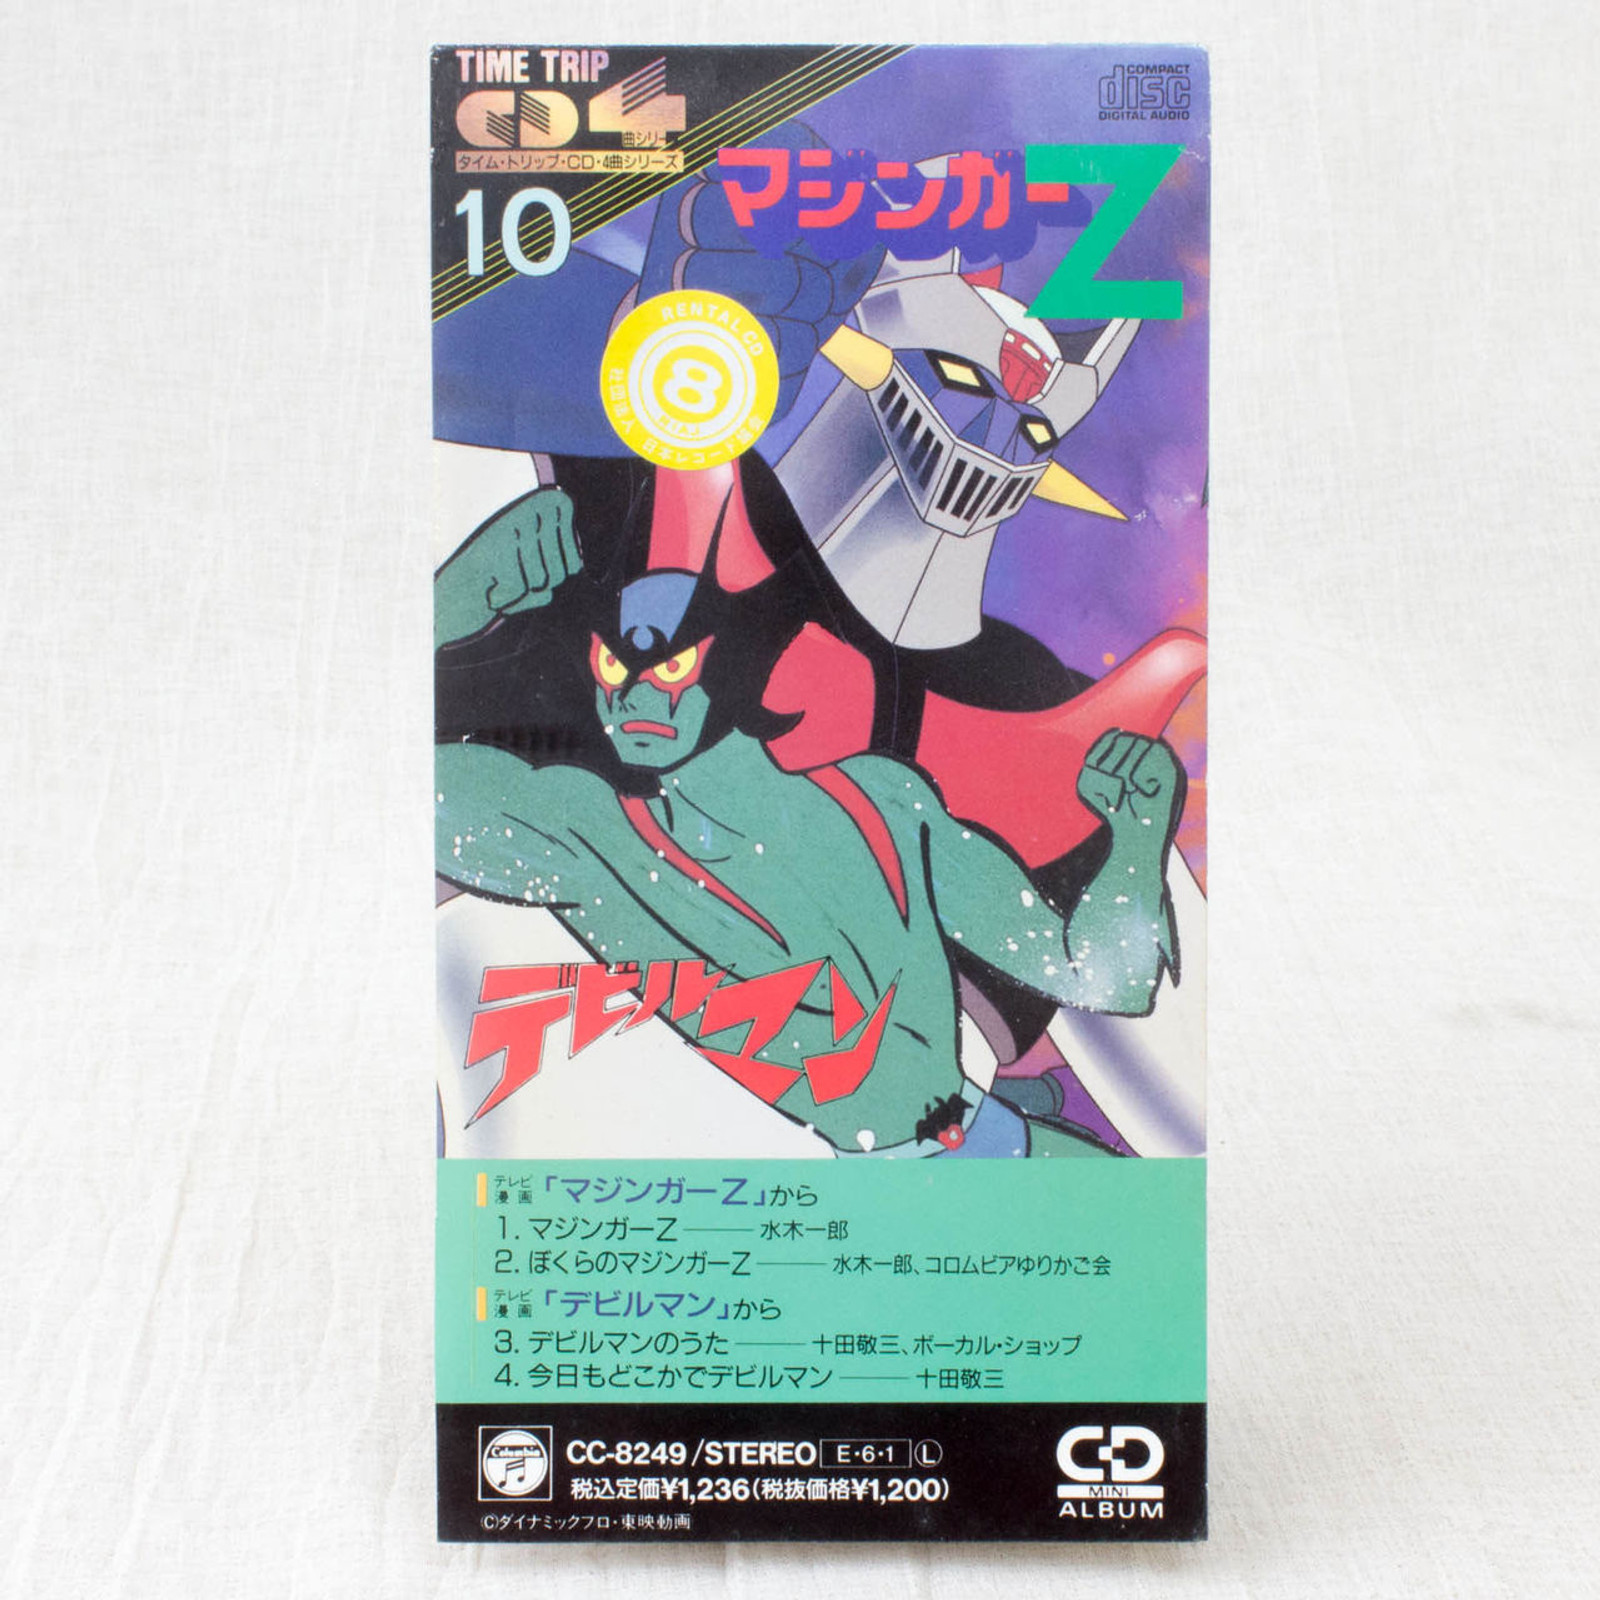 Mazinger Z + Devilman Theme Song 3 inch 8cm CD JAPAN ANIME MANGA